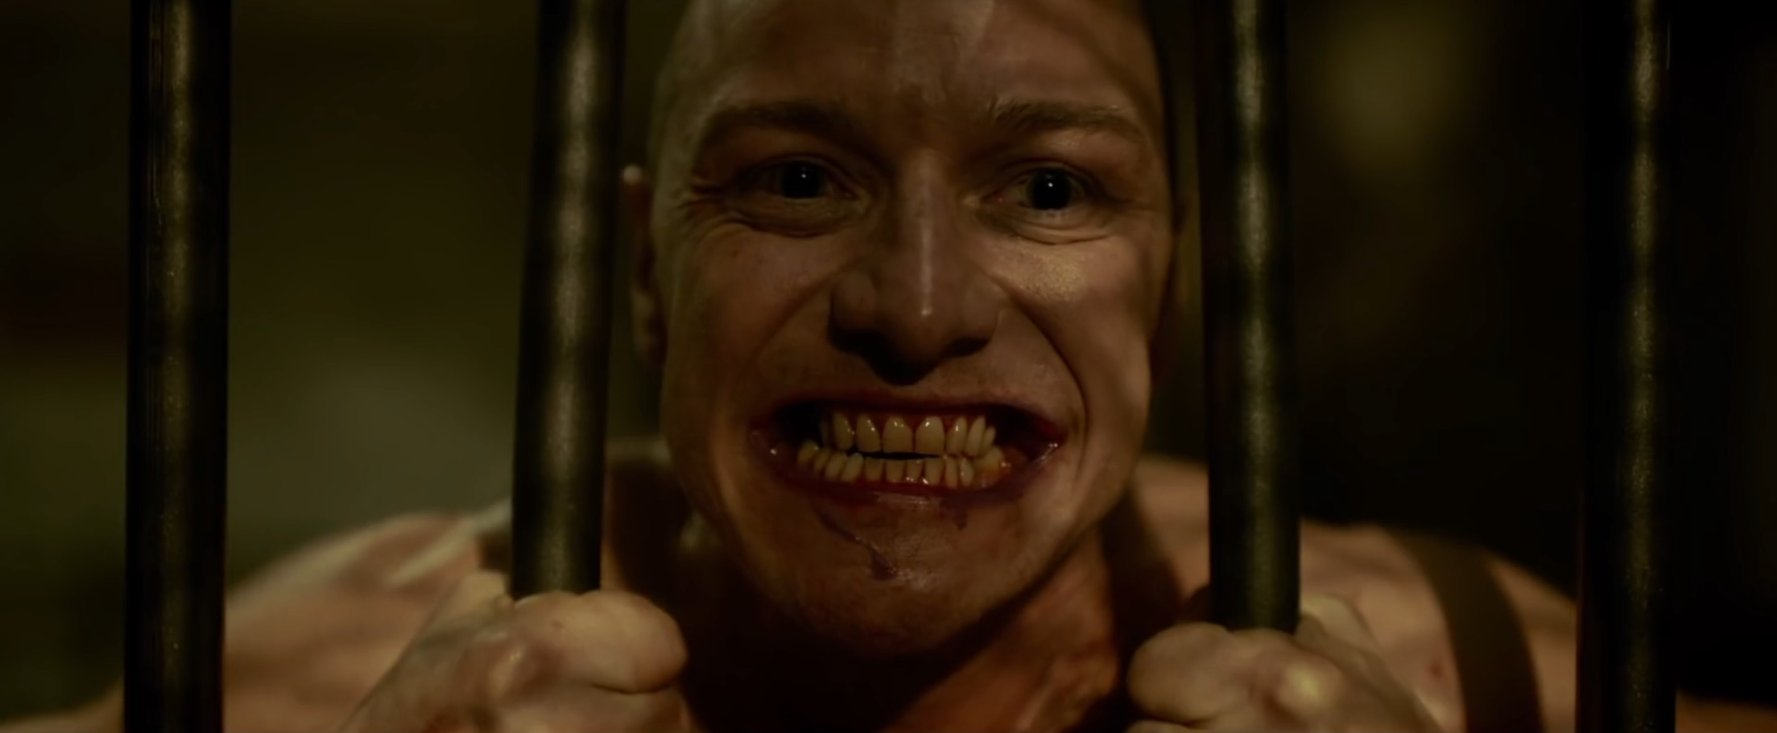 Split 2017 horror movie review - M Night Shyamalan - James McAvoy